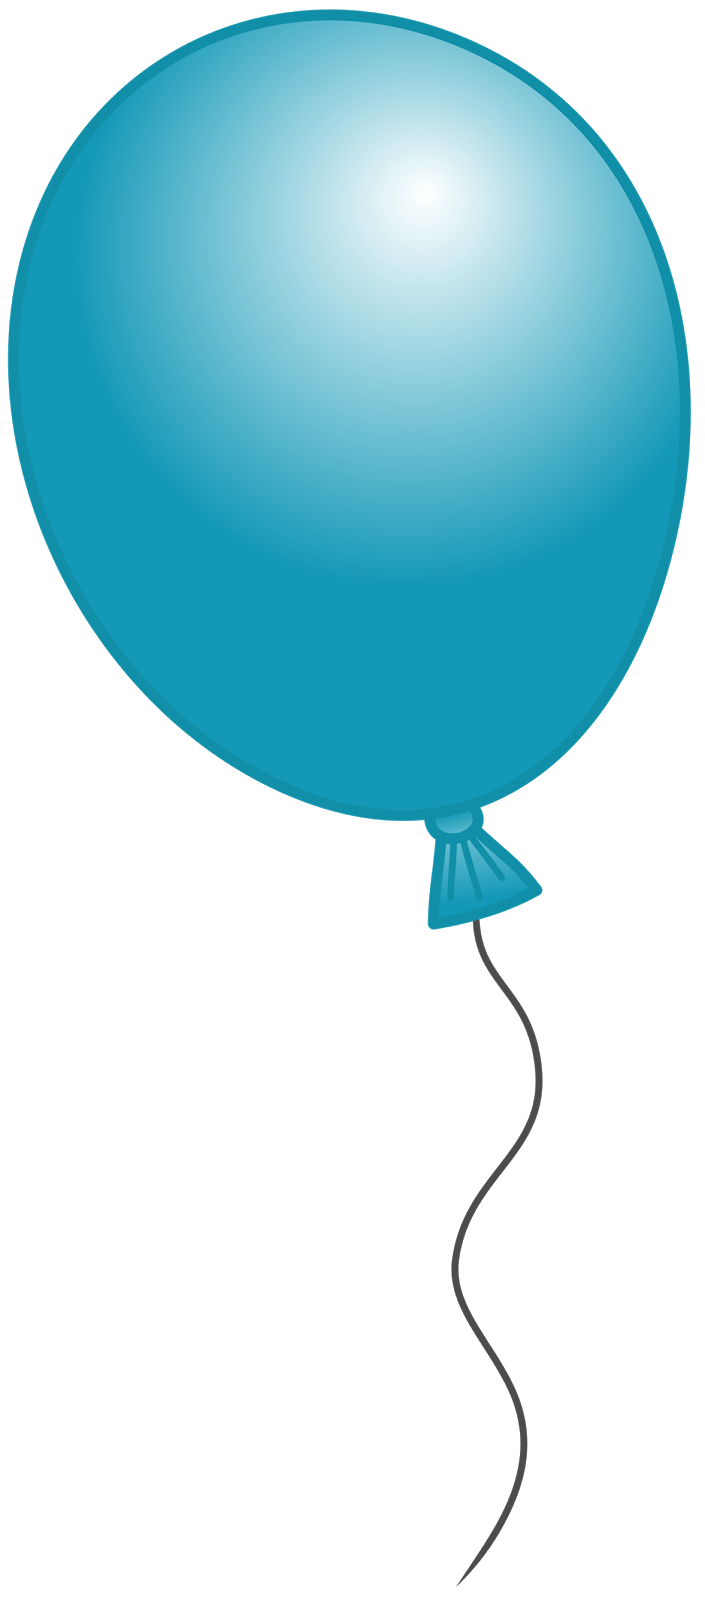 Clipart balloon teal.  collection of transparent